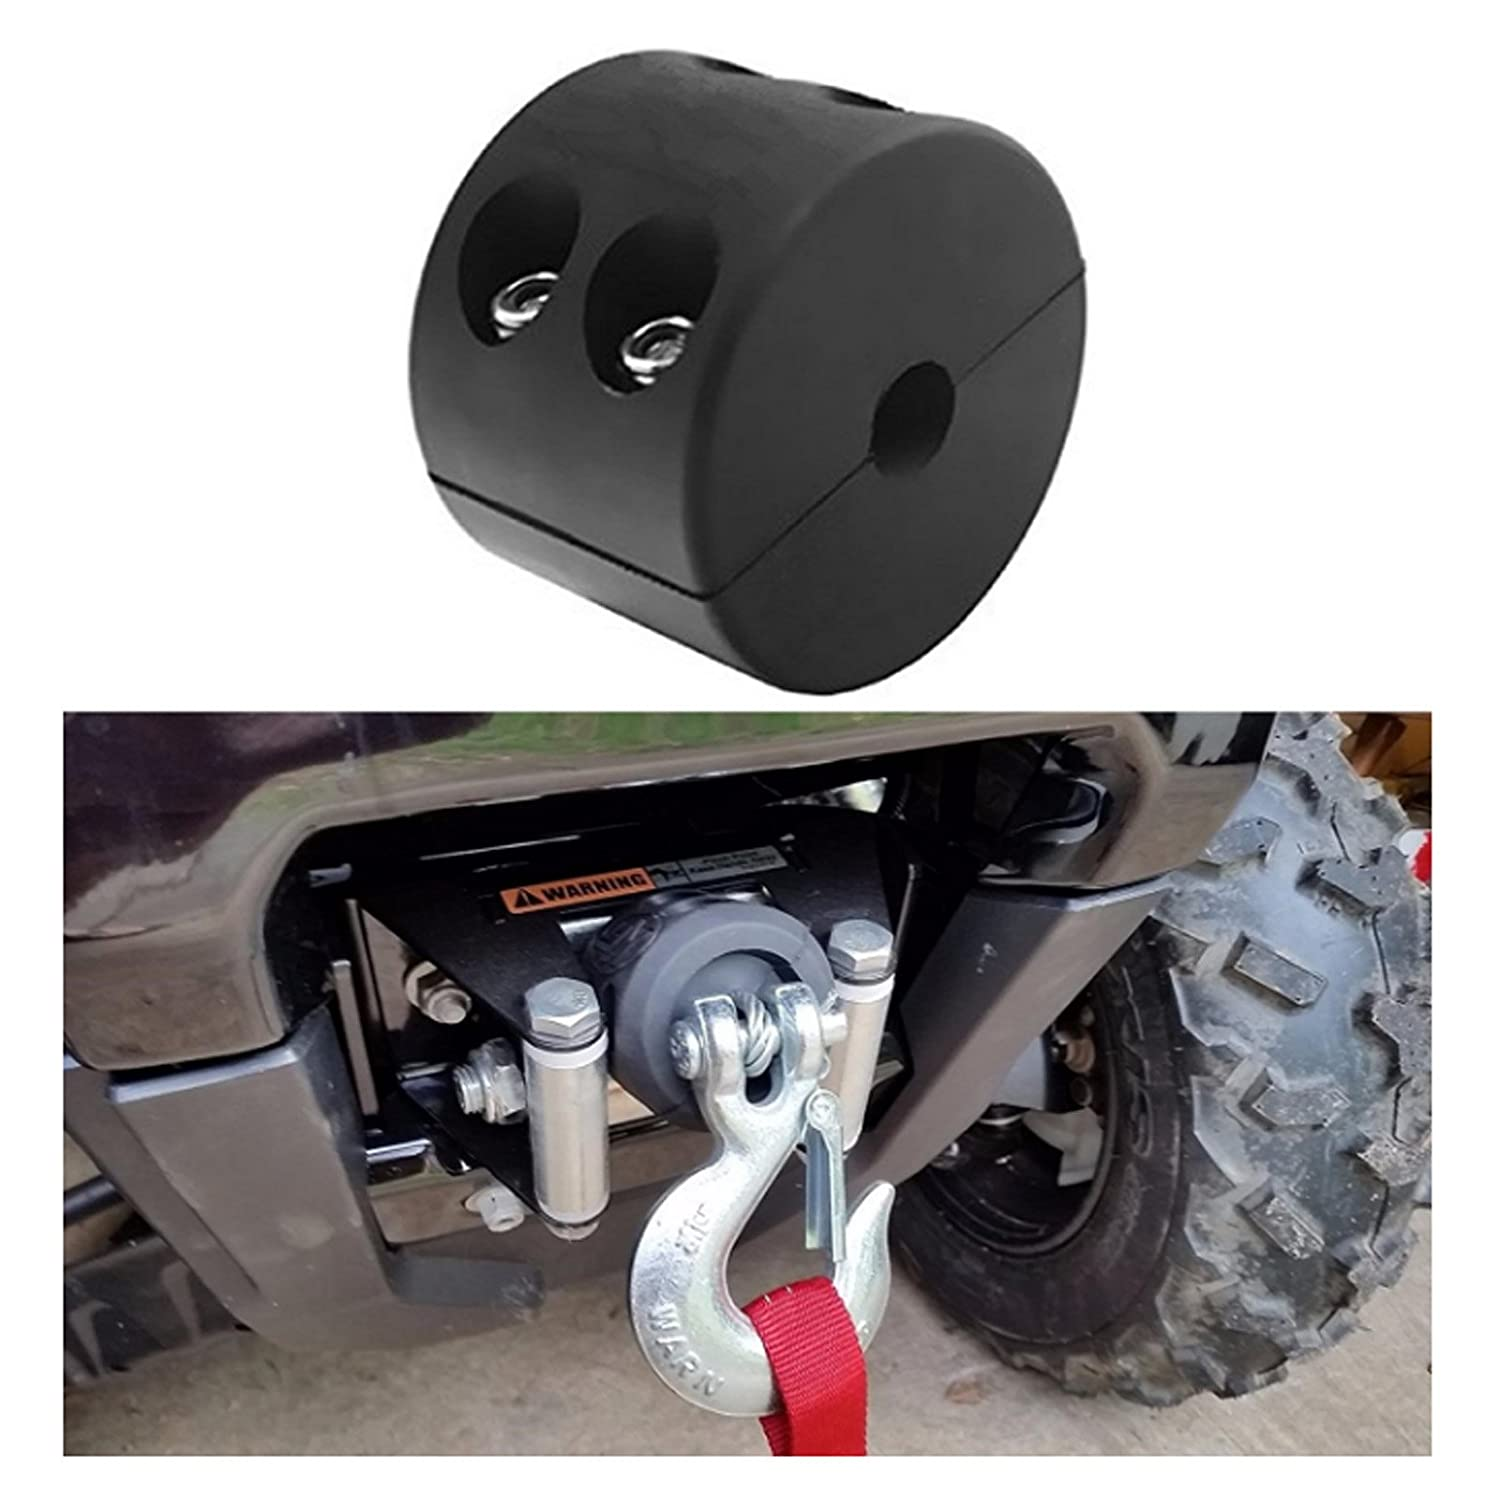 Reusious Rubber Winch Cable Hook Stopper for ATV UTV, Black Heavy Duty Line Saver with Allen Wrench (BALCK)